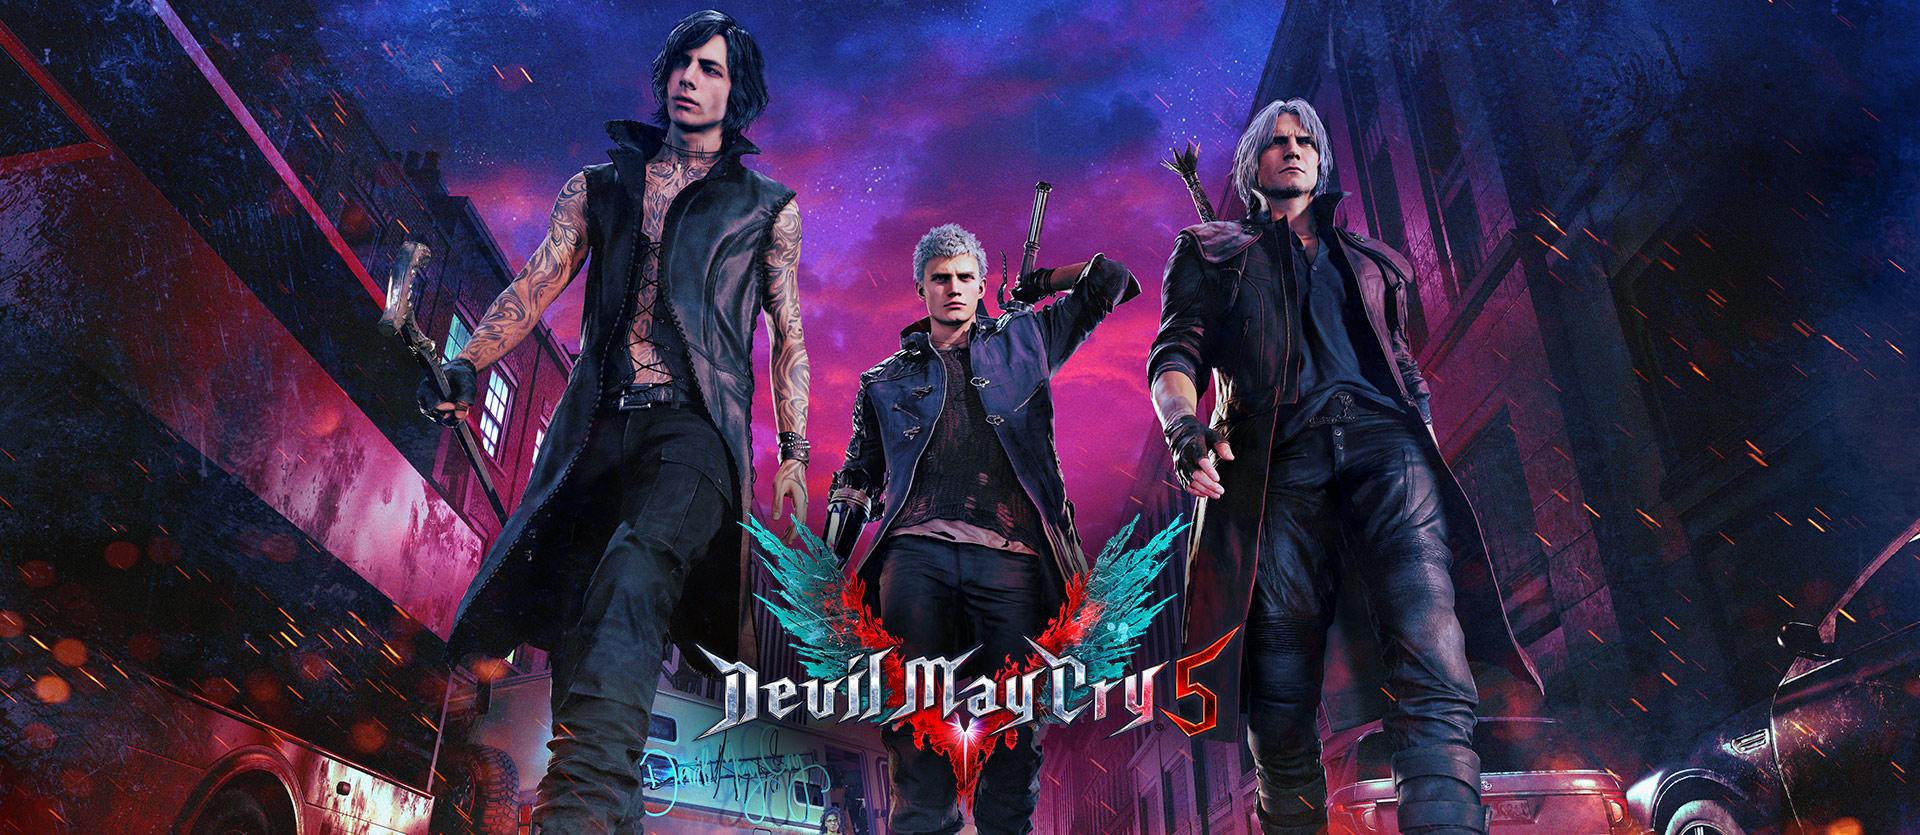 Devil May Cry 5, three demon hunters walk down a street full of insect creatures